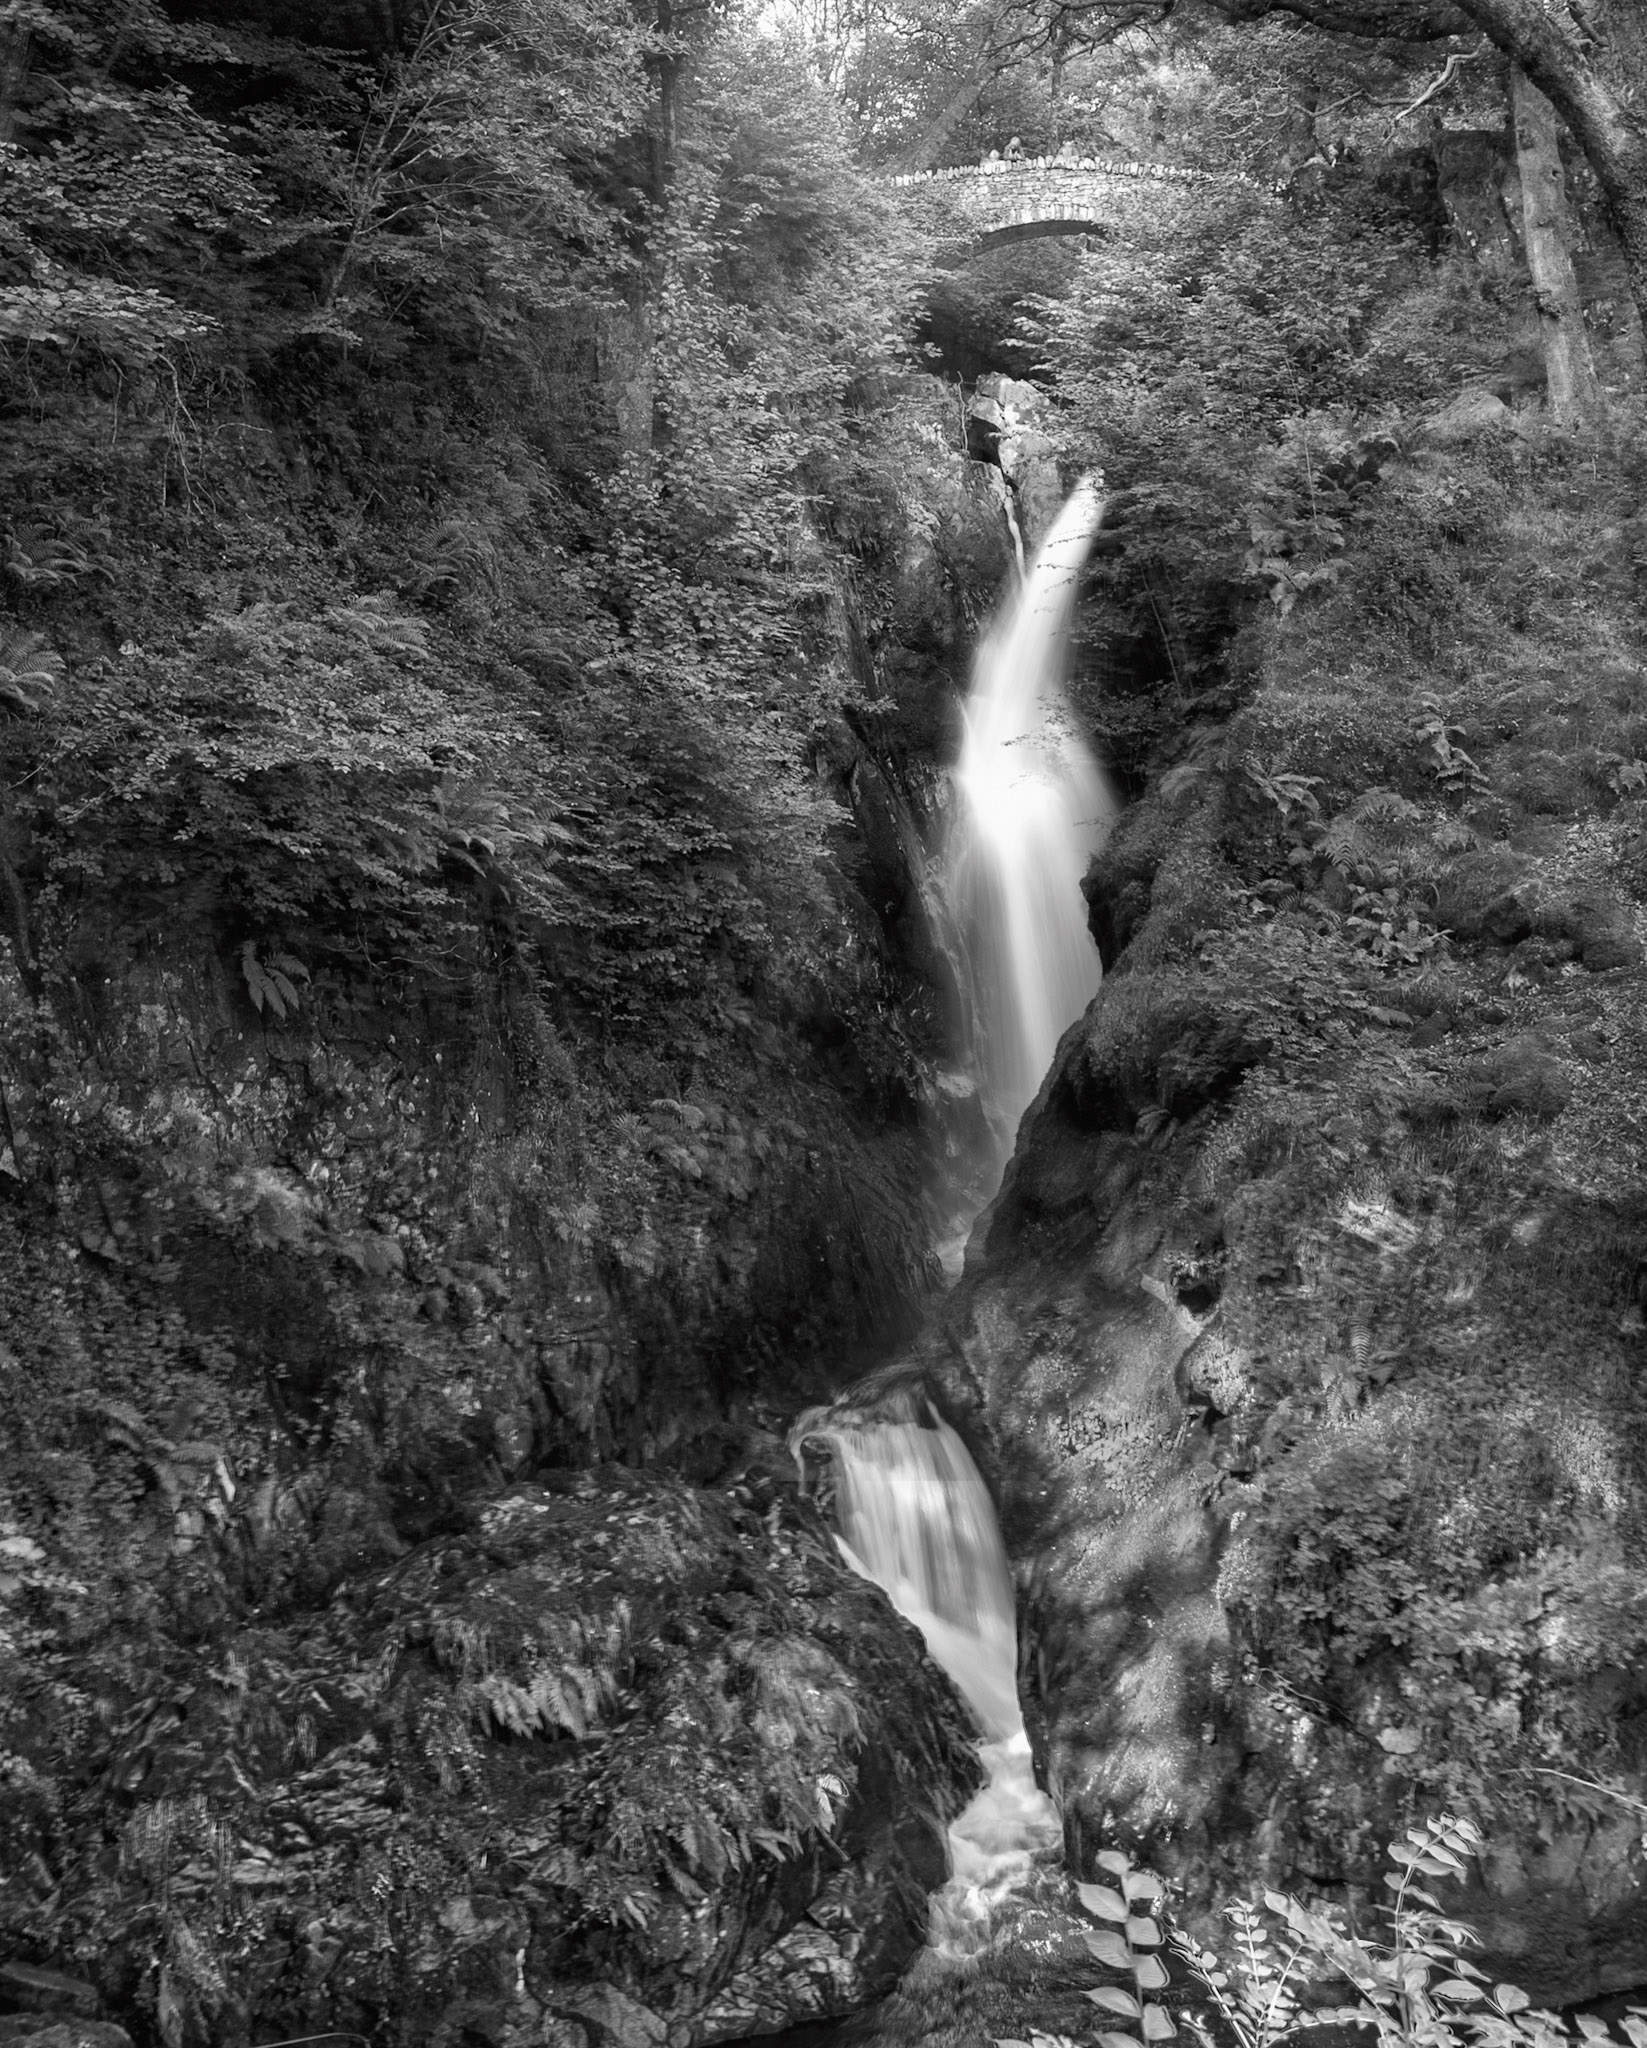 Aira Force, Near Ullswater, Lake District, England